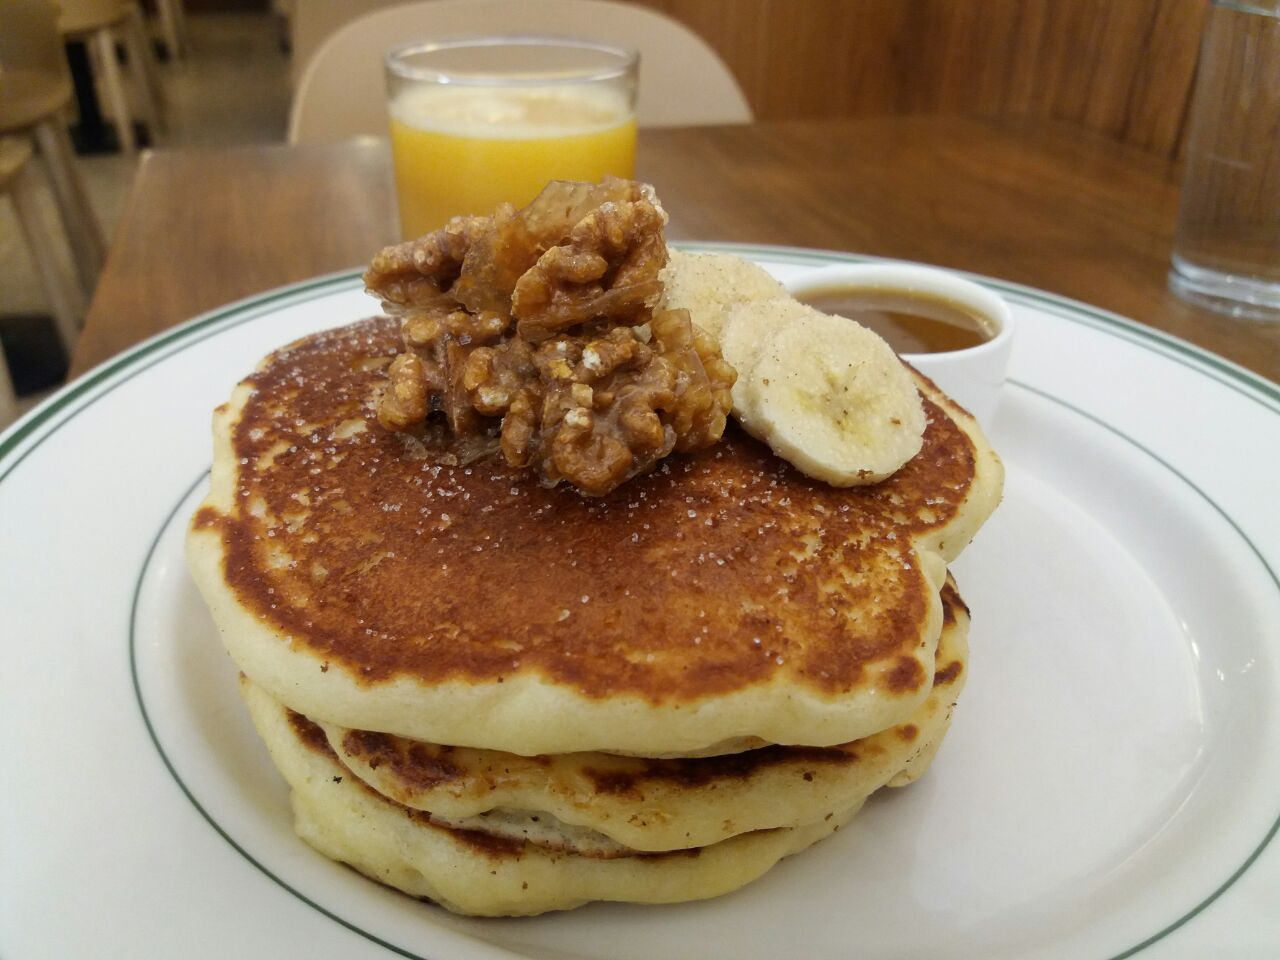 Pancakes With Banana And Candied Walnut